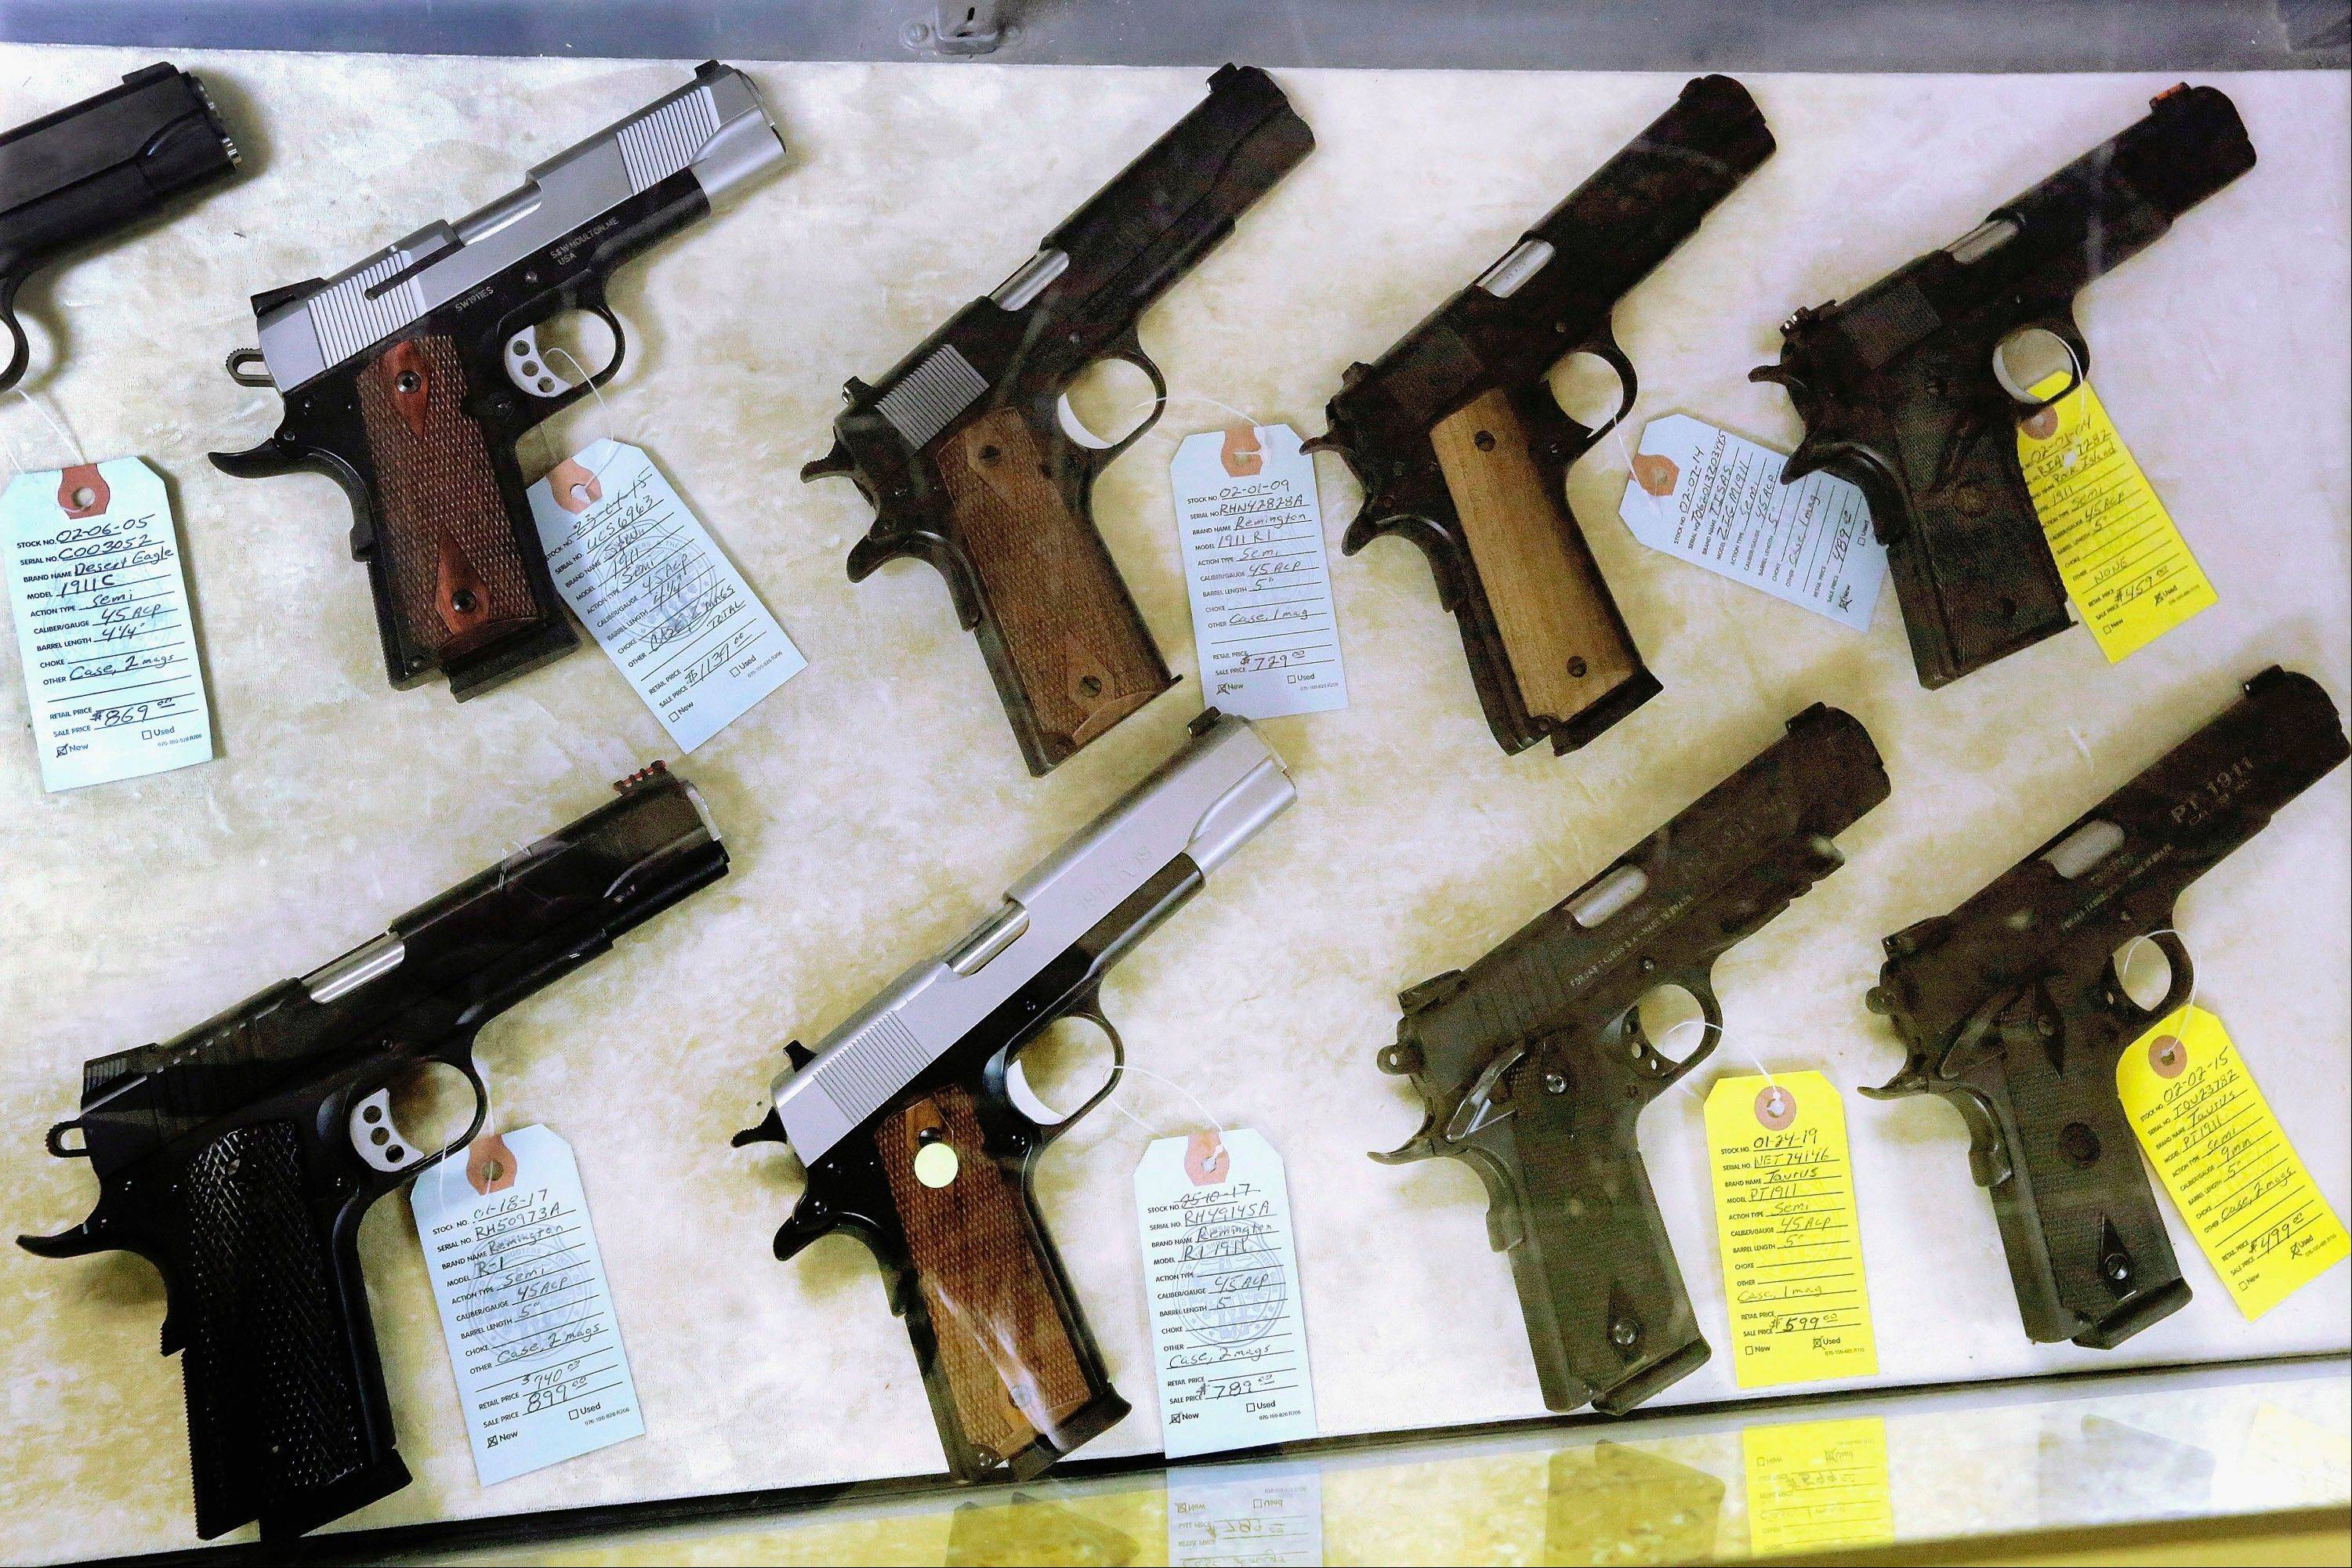 Illinois residents for the first time can apply for permits to carry concealed weapons.